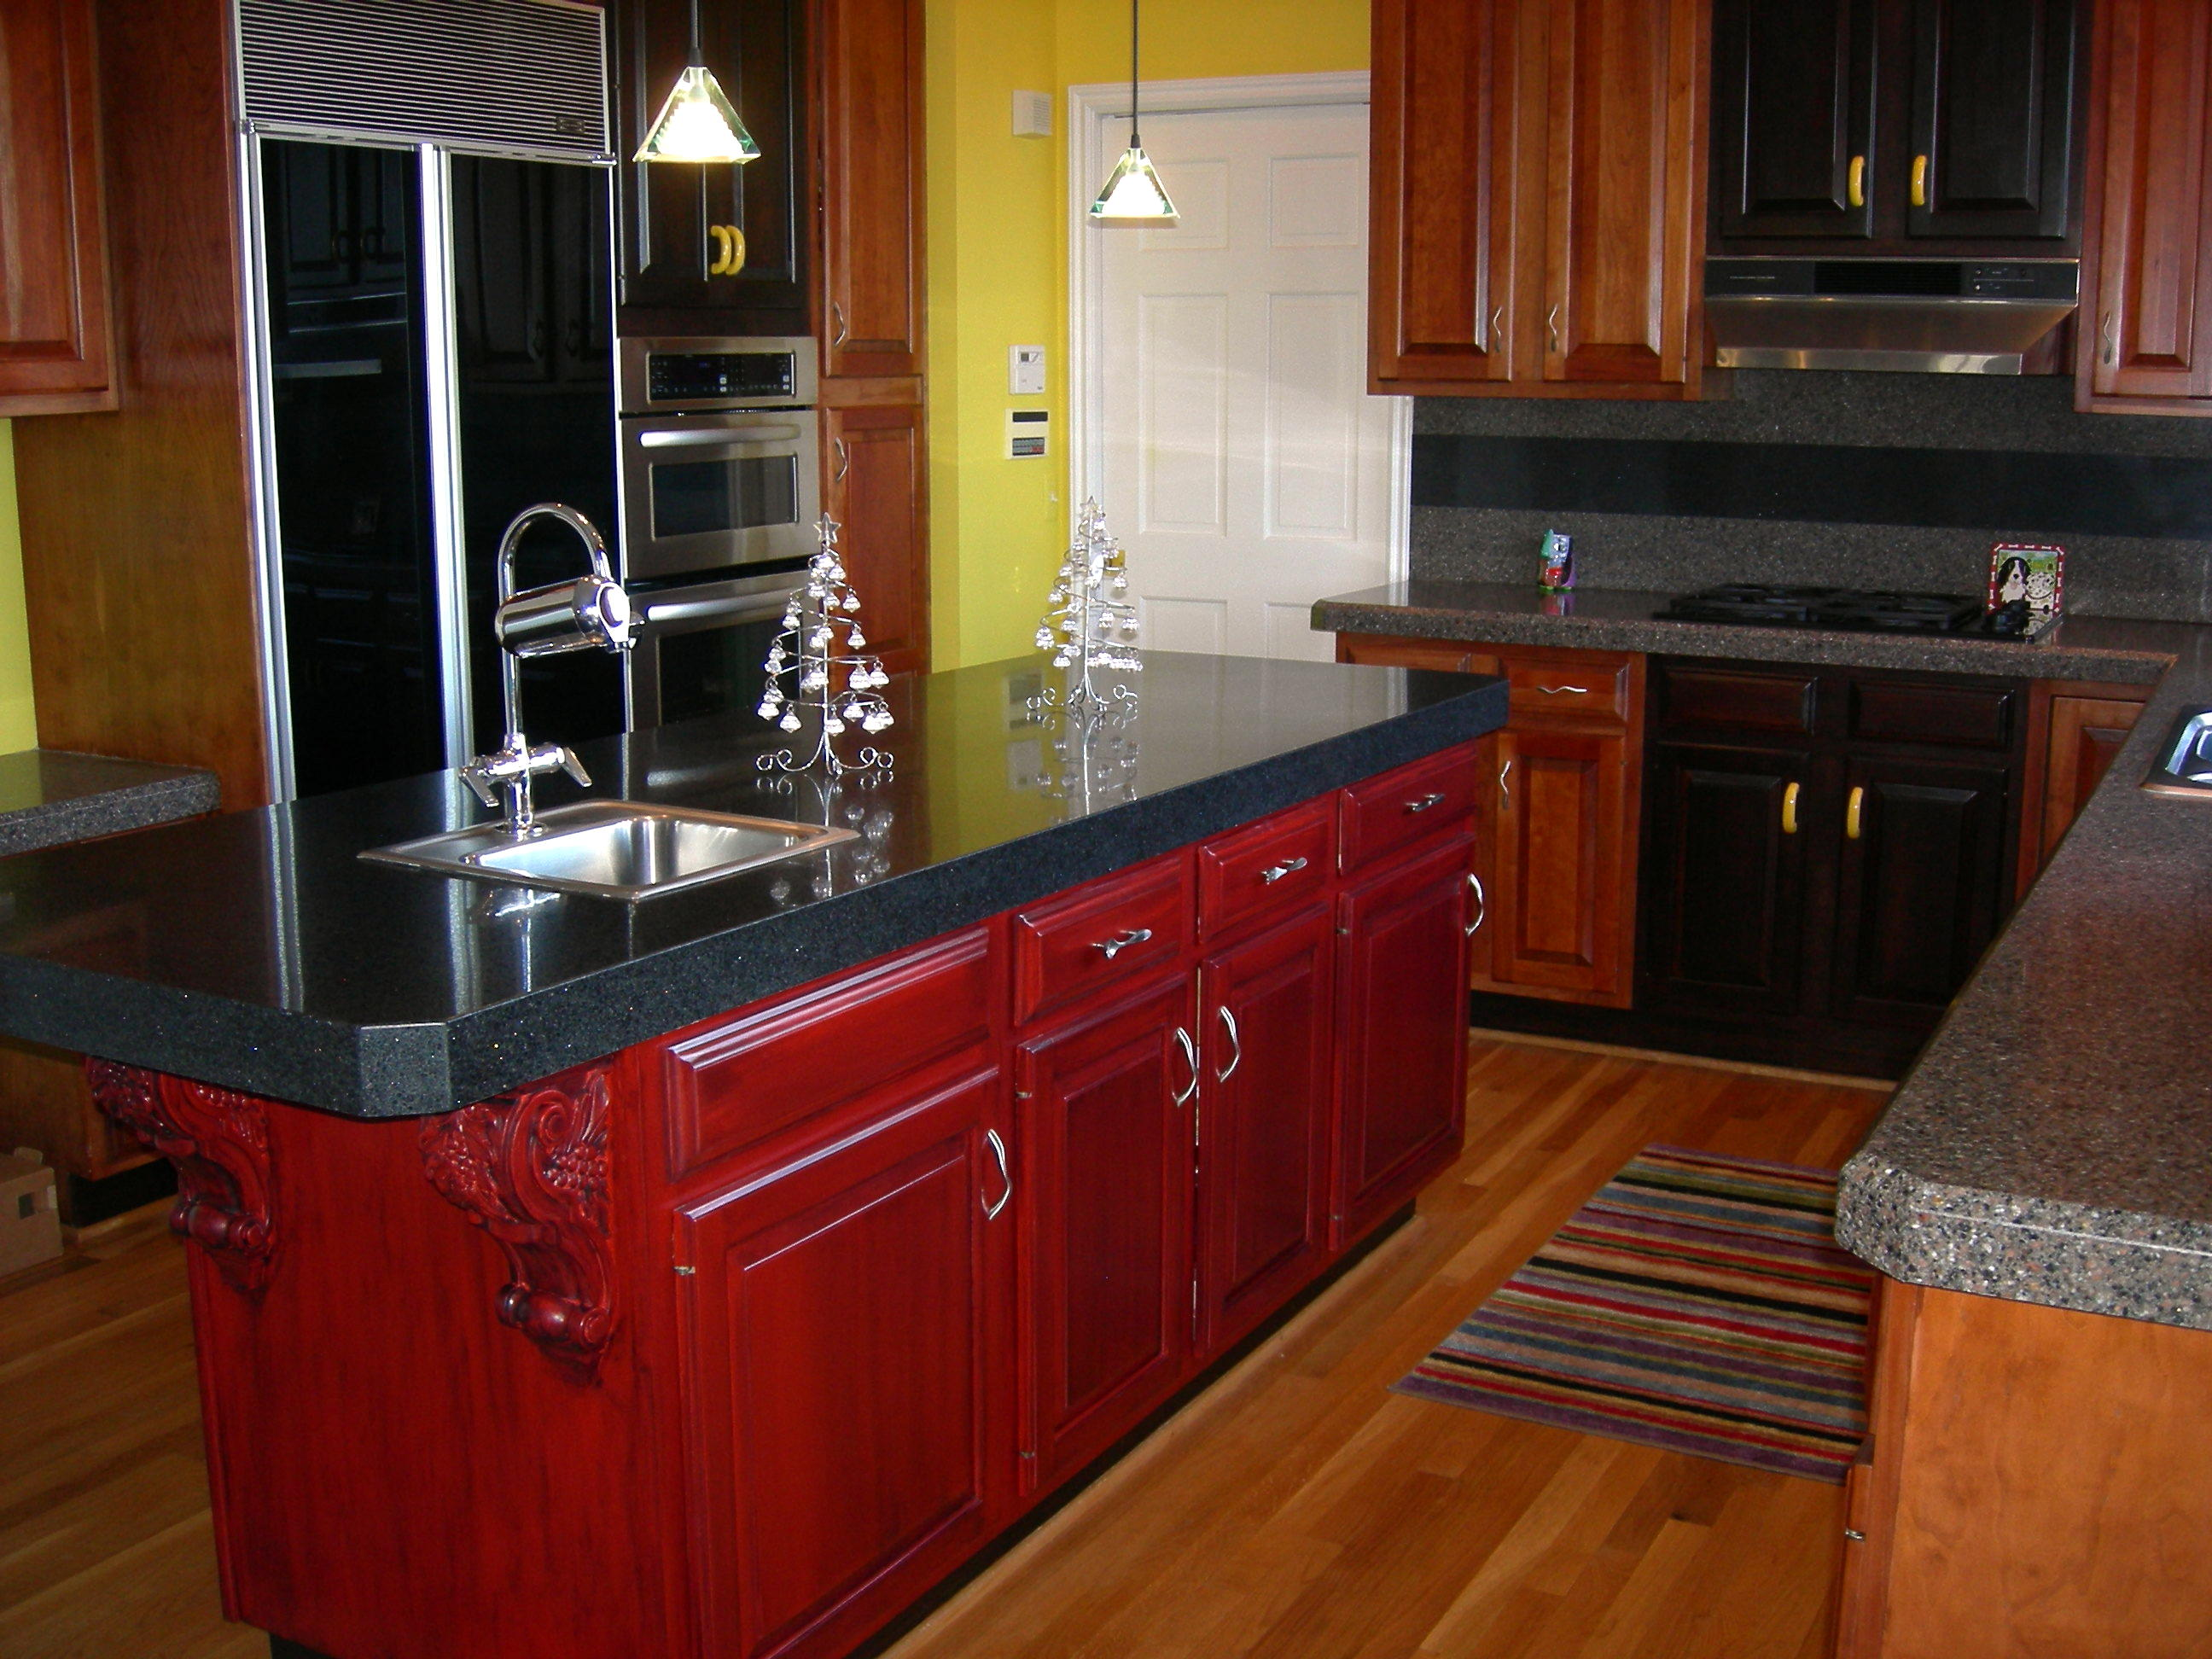 Good A Kitchen Make Over In 5 Days? Consider Cabinet Refacing